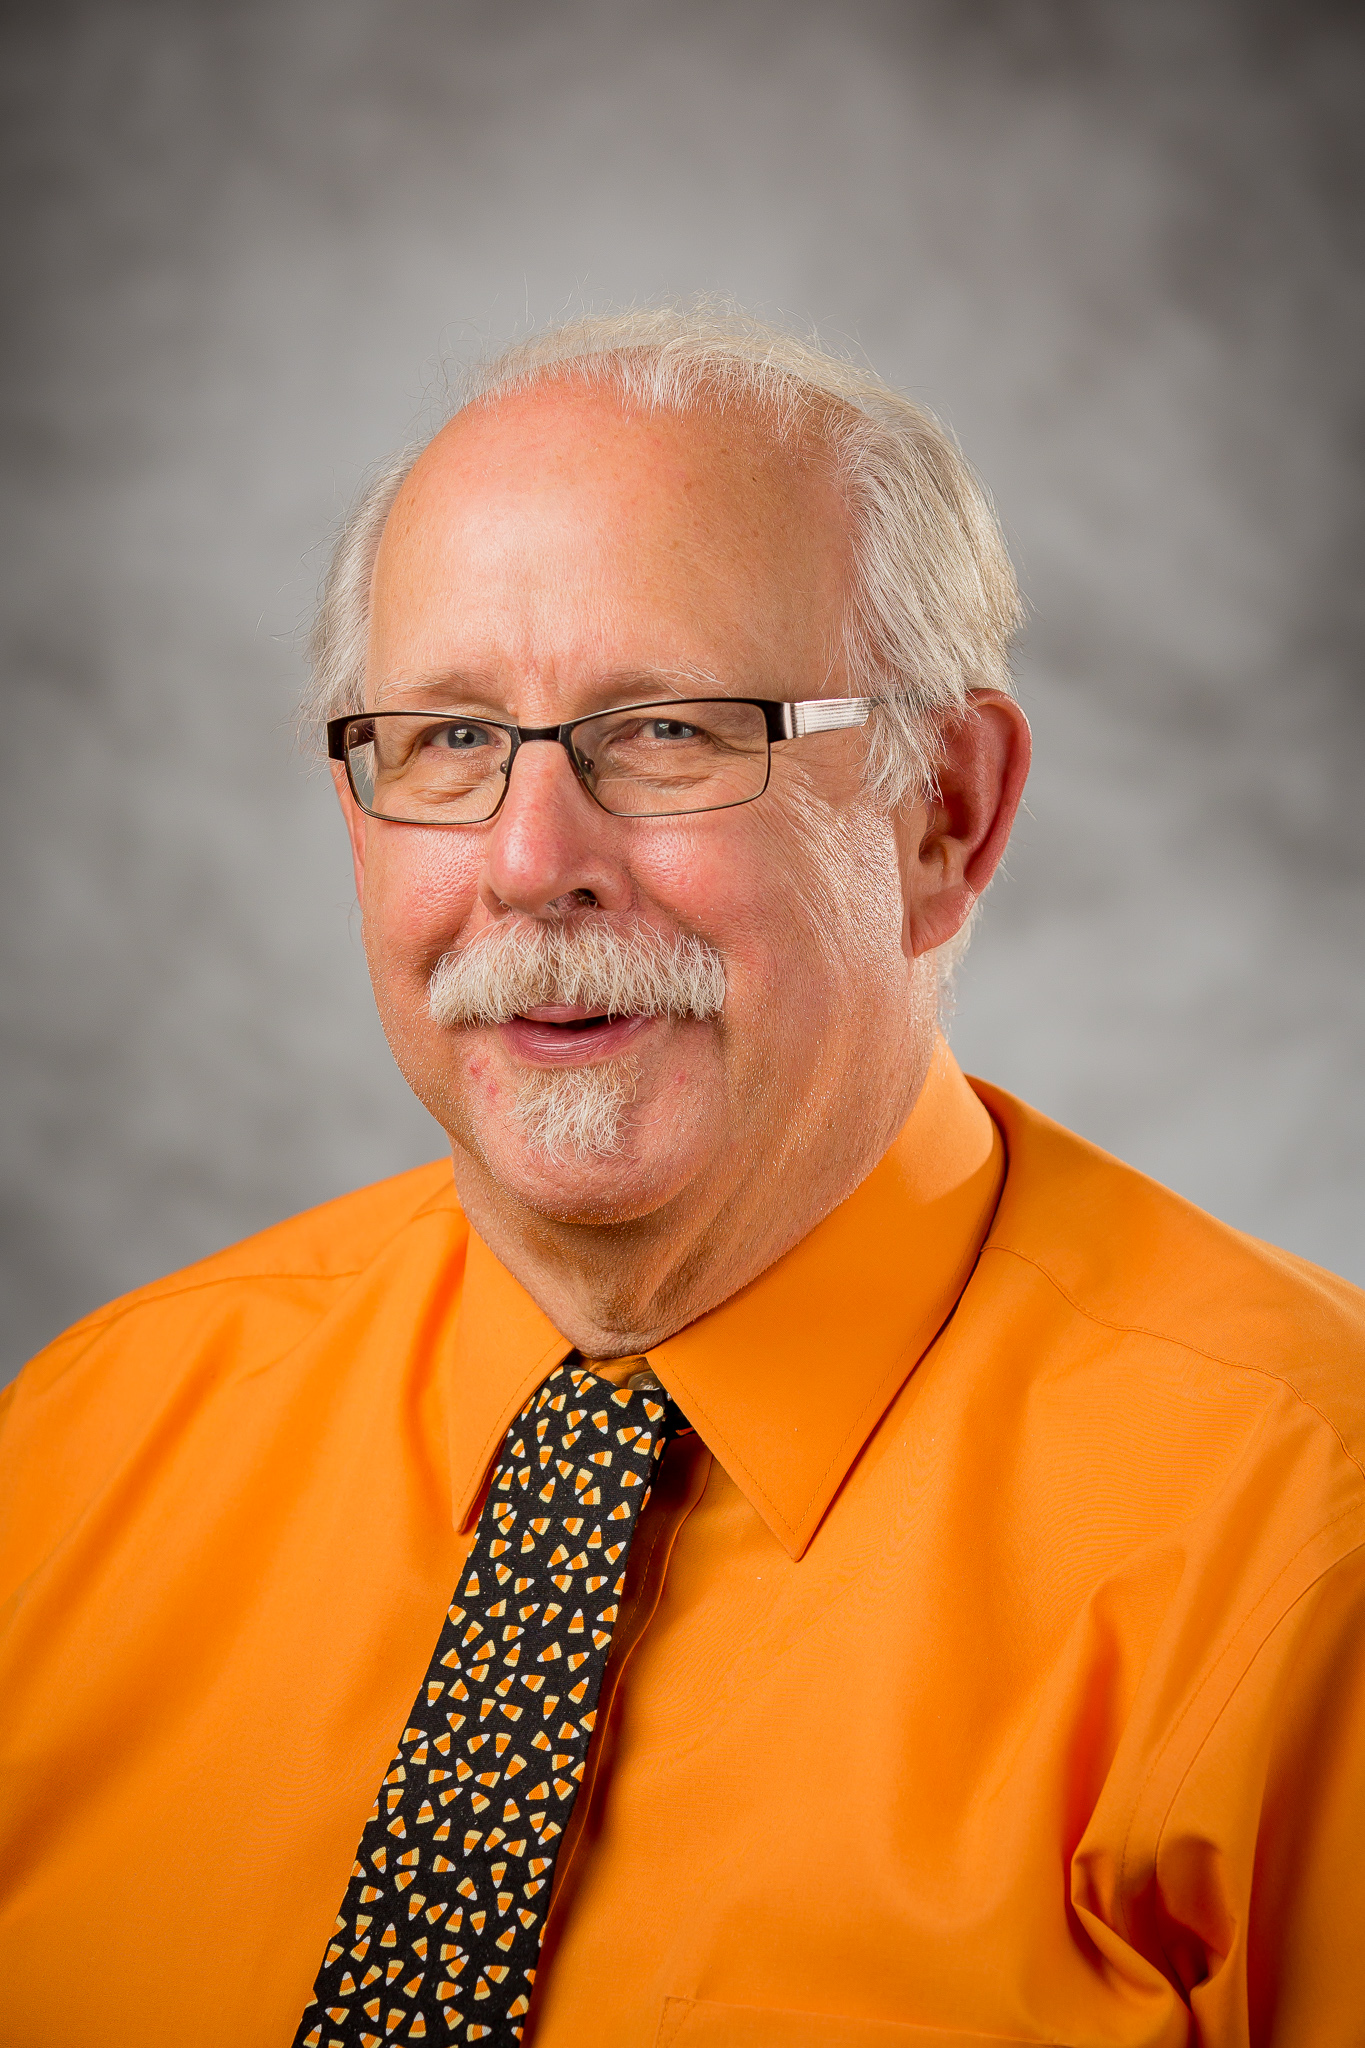 picture of a man with glasses and a orange button up shirt with a candy-corn tie